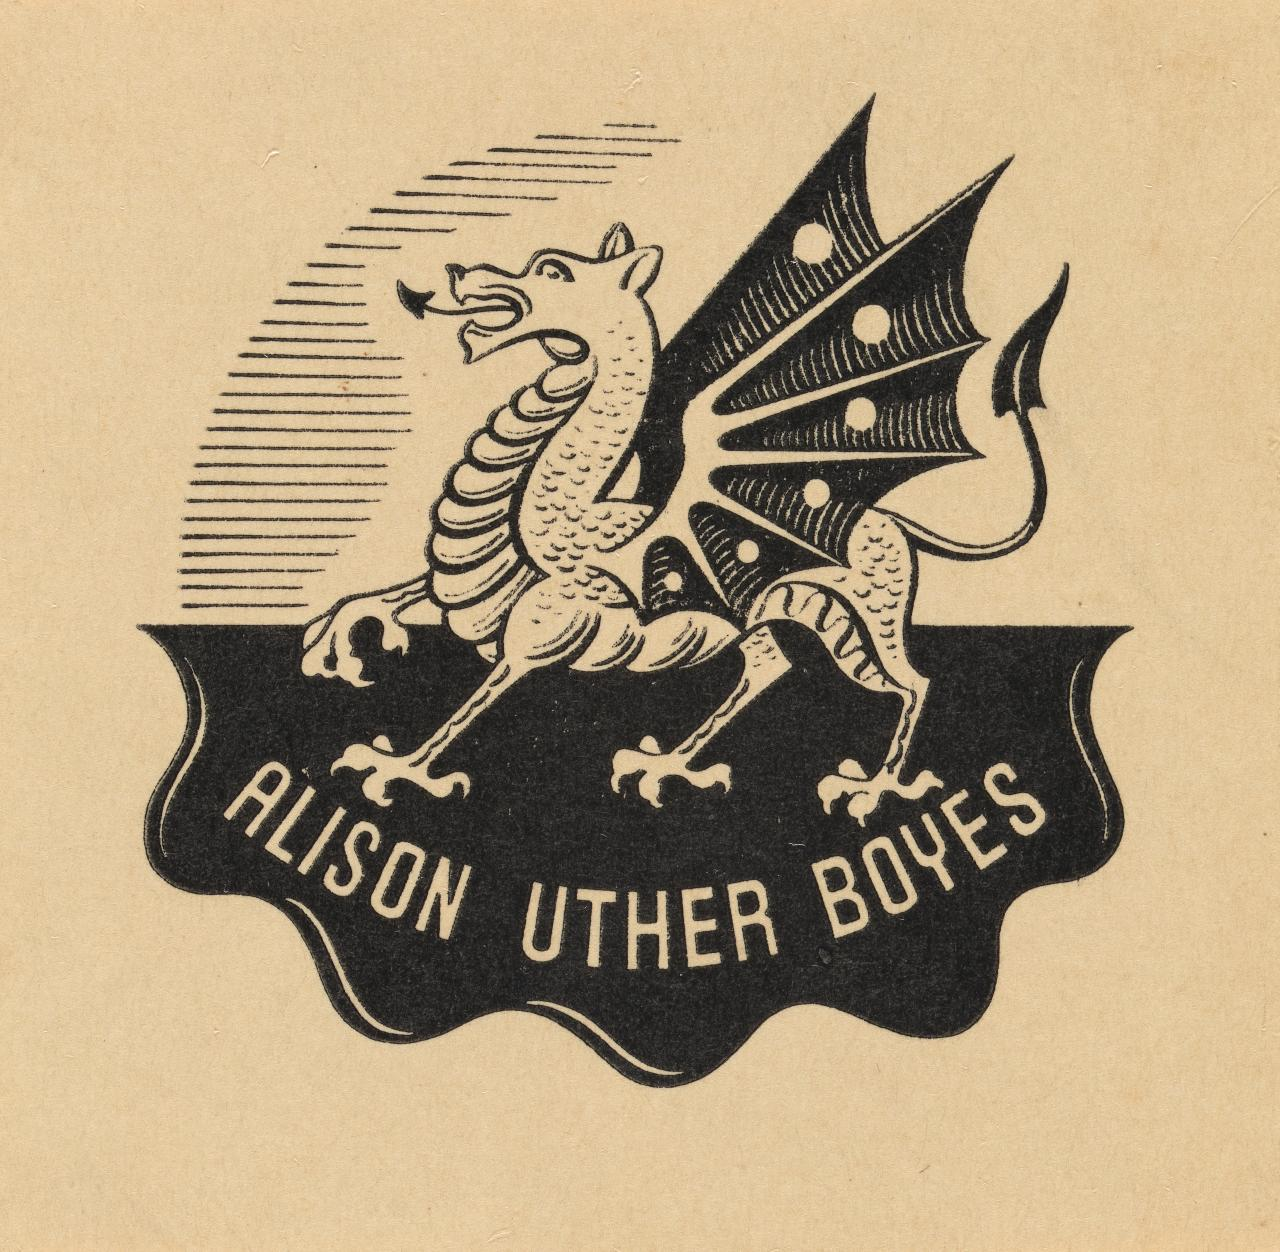 Bookplate: Alison Uther Boyes (Welsh dragon)